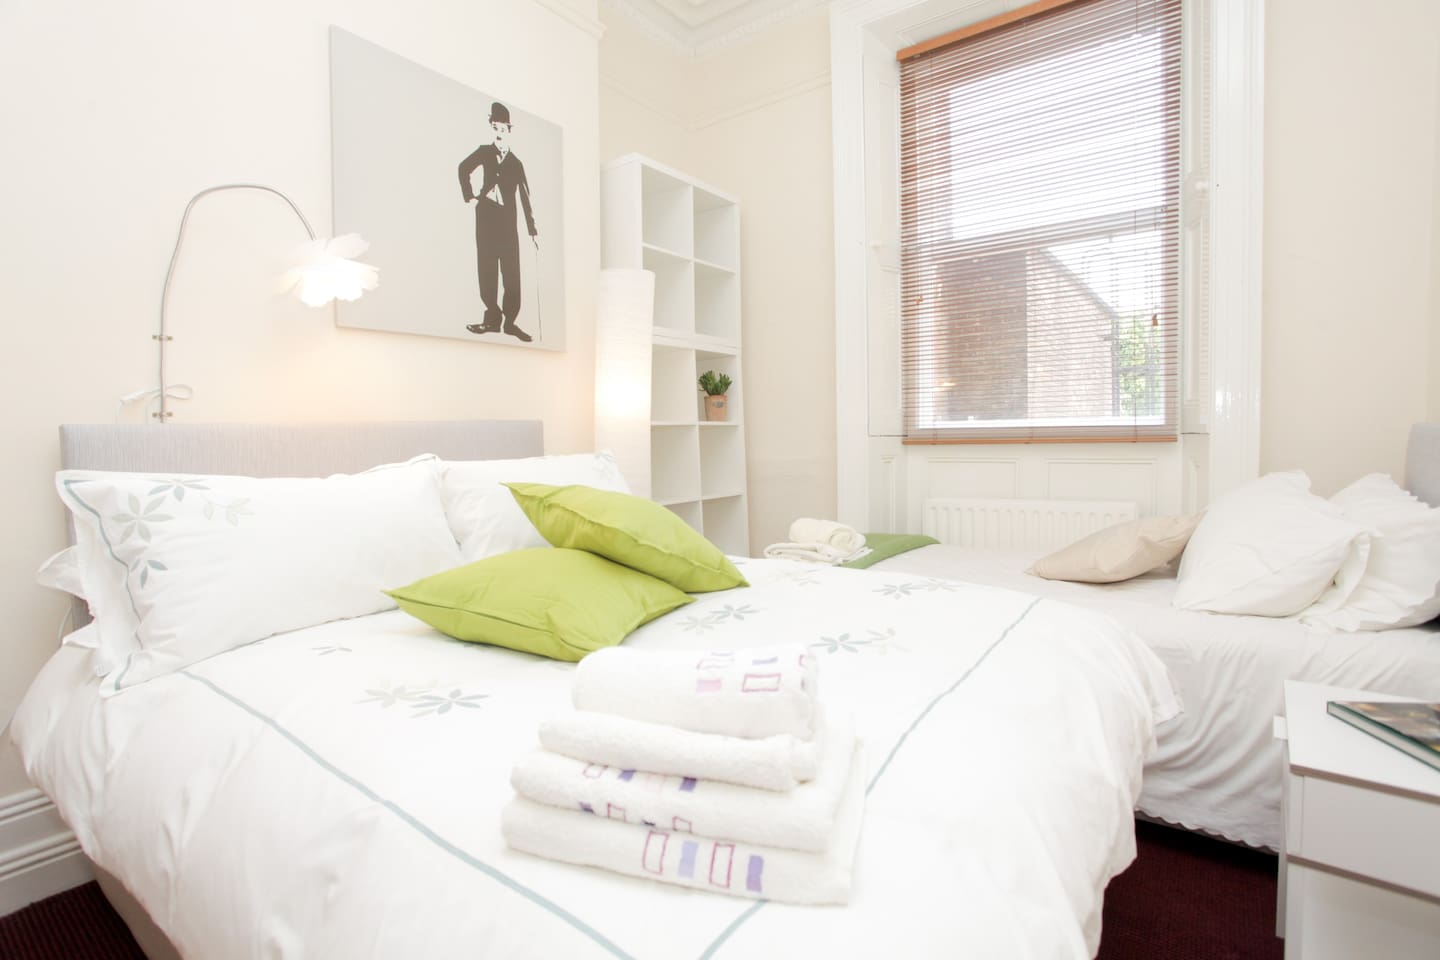 Comfortable and relaxing bedrooms at the rear of the building ensure you get a peaceful nights rest.